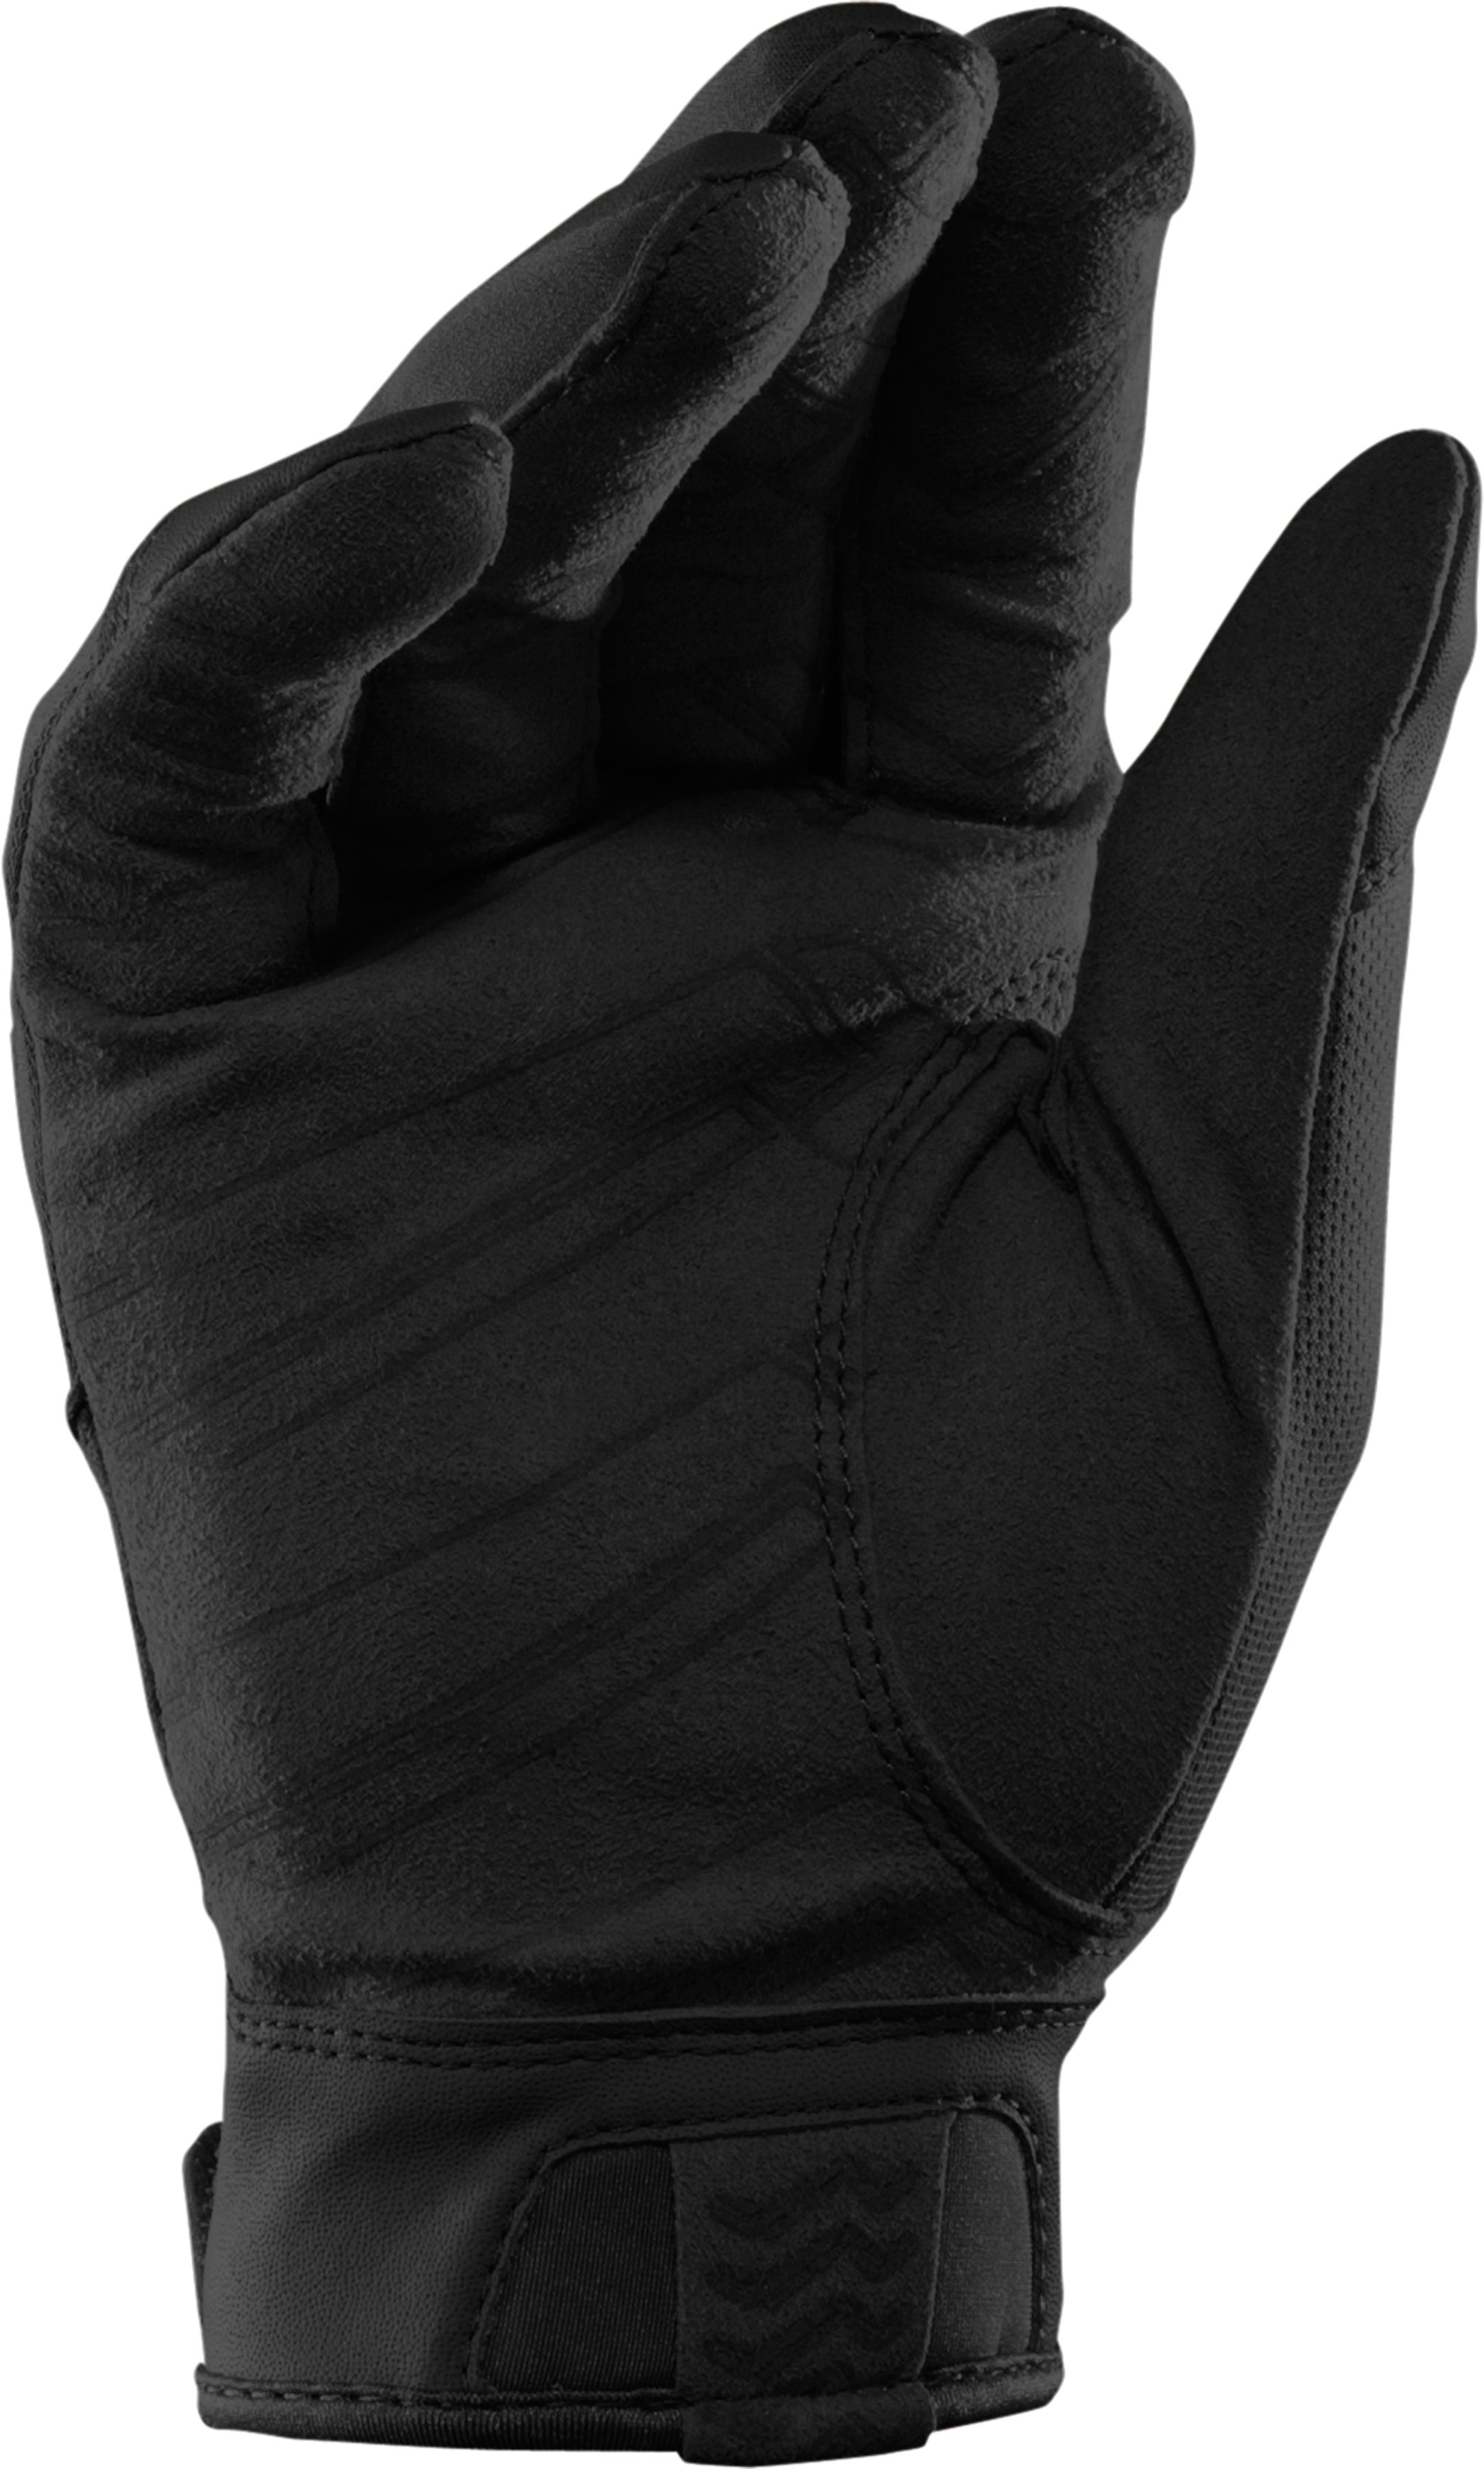 Men's Tactical Winter Blackout Glove, Black